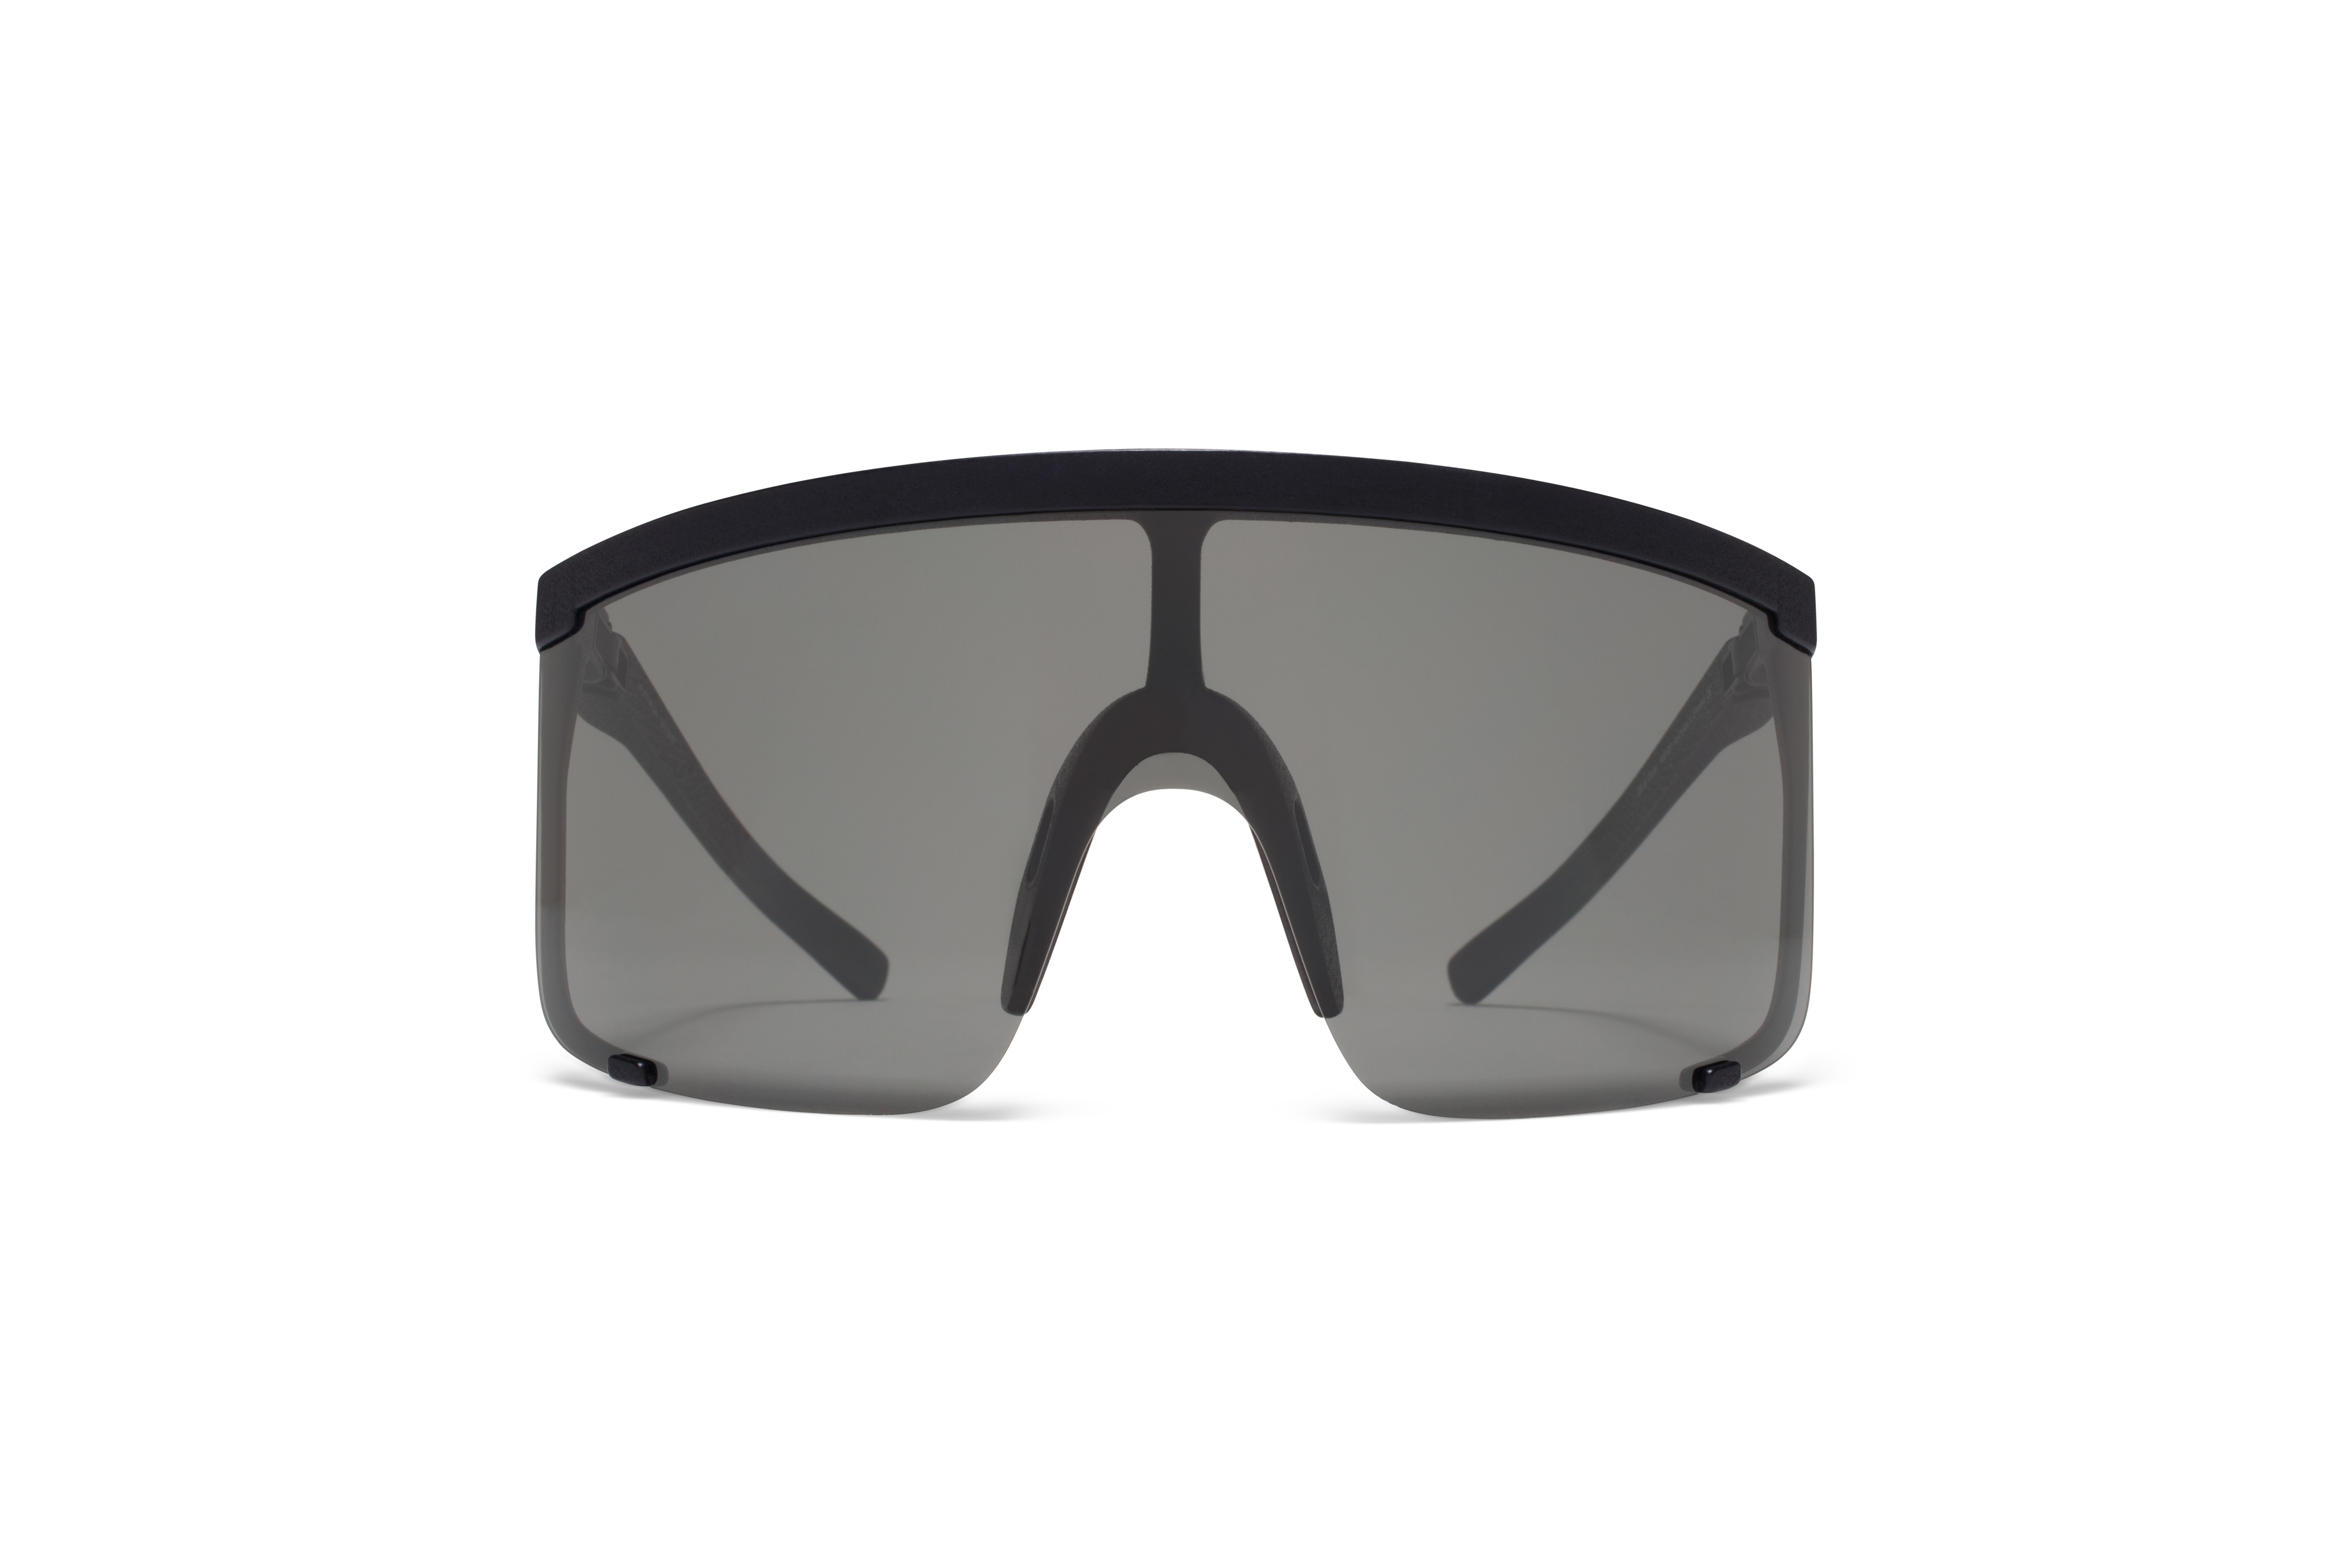 MYKITA Mylon Sun Rocket Md1 Pitch Black Darkgrey S58d52f1552e64